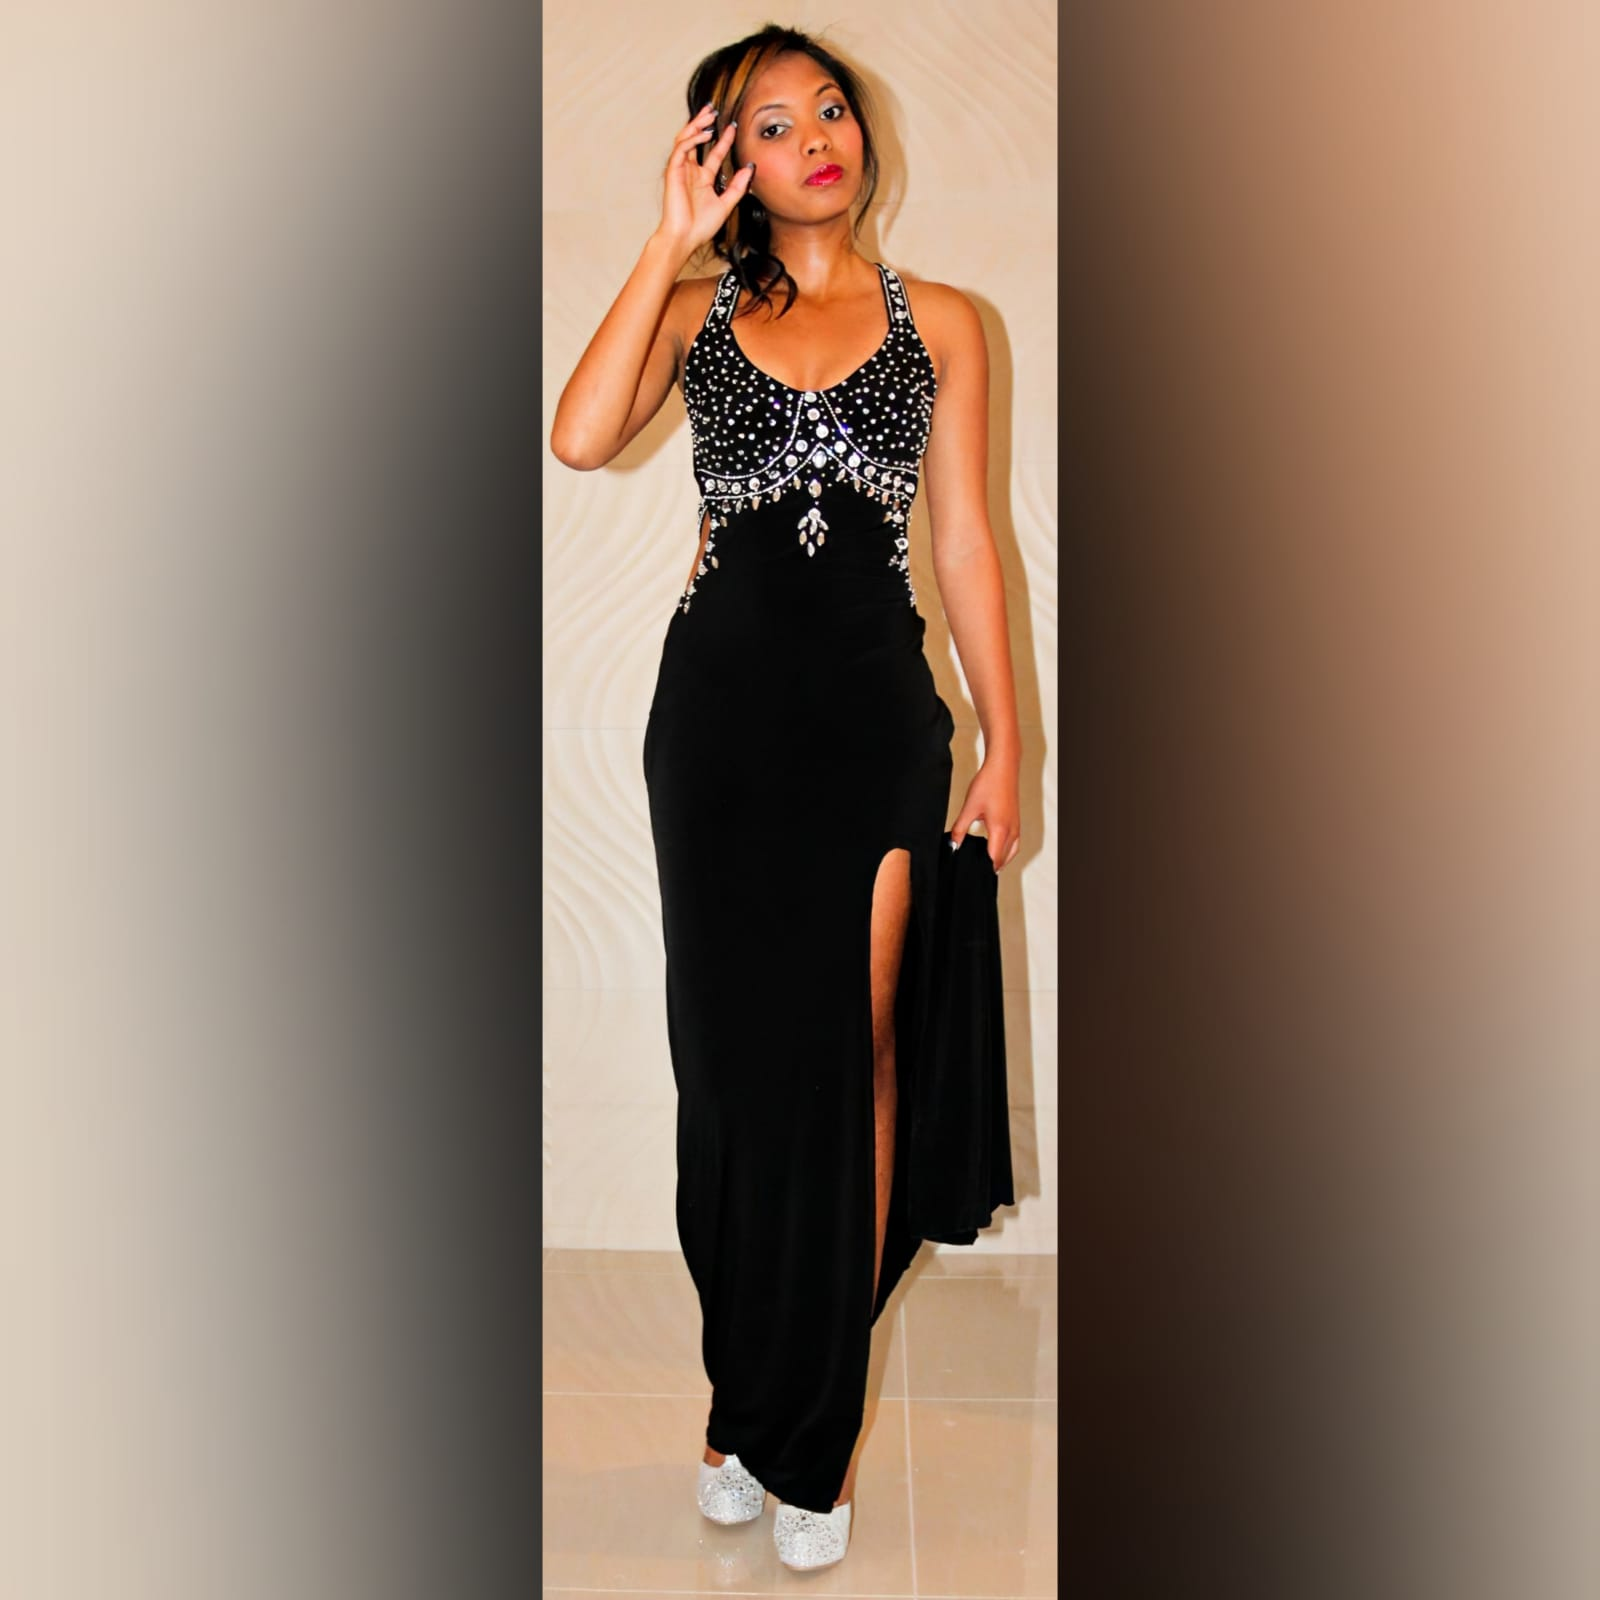 Black and silver prom dress with a low open back 3 black & silver prom dress with a low open back, a slit and train. Slightly open on the side of the tummy. Back straps and bodice detailed with silver beads and diamante